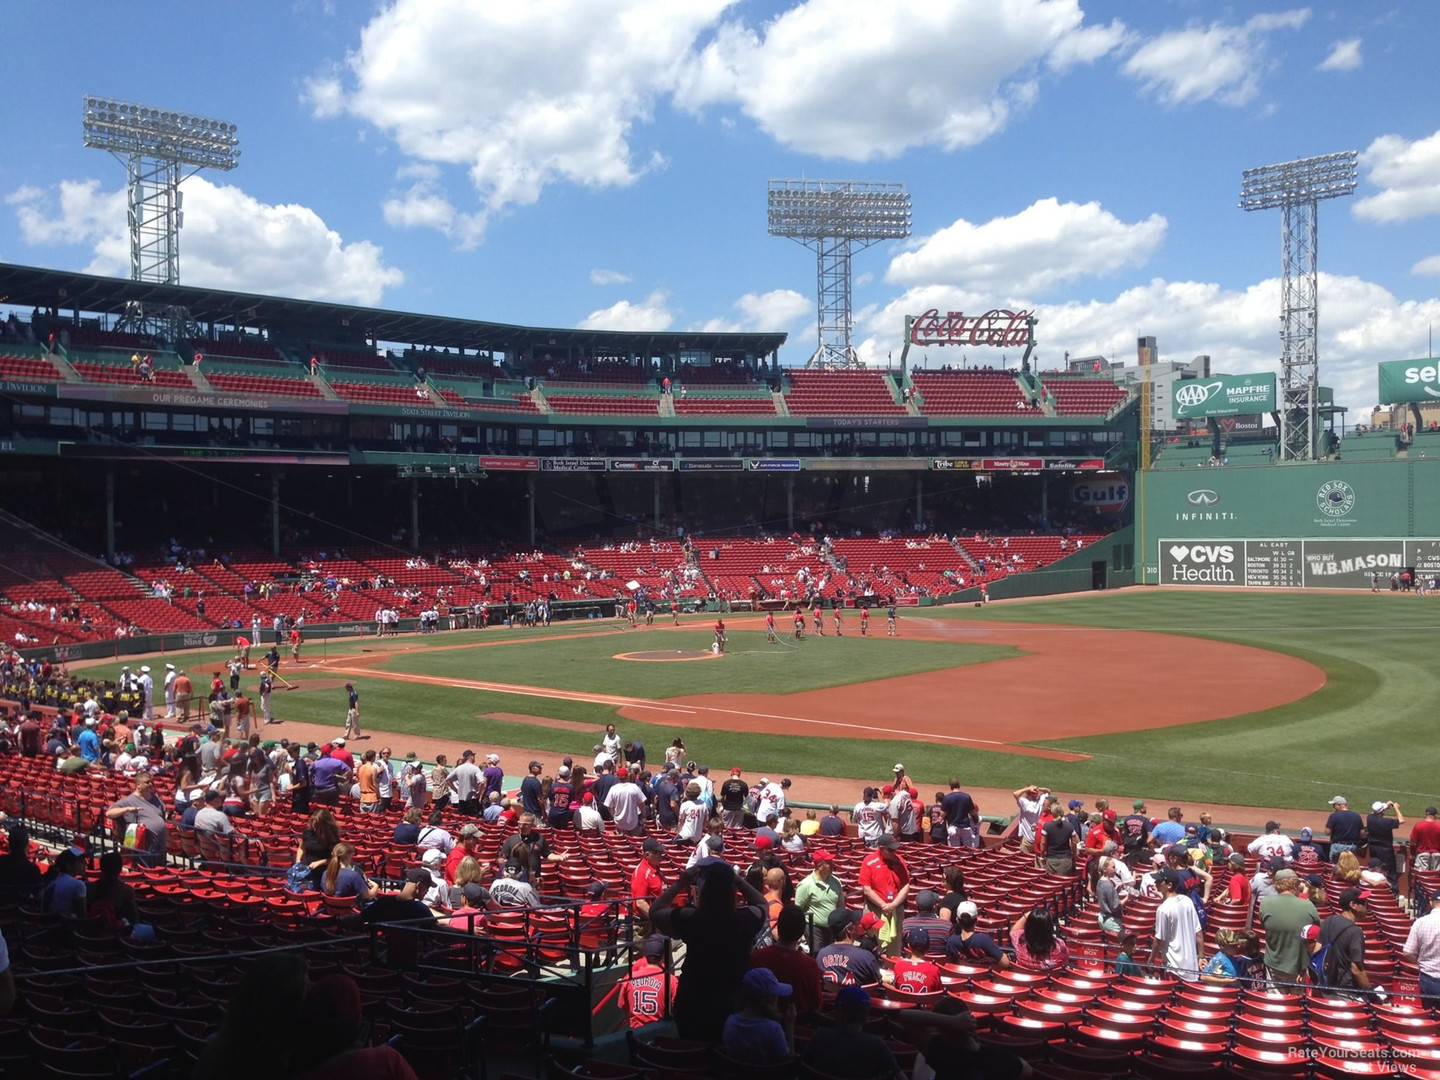 Fenway-Park-Section-LB102-Row-RR-on-6-23